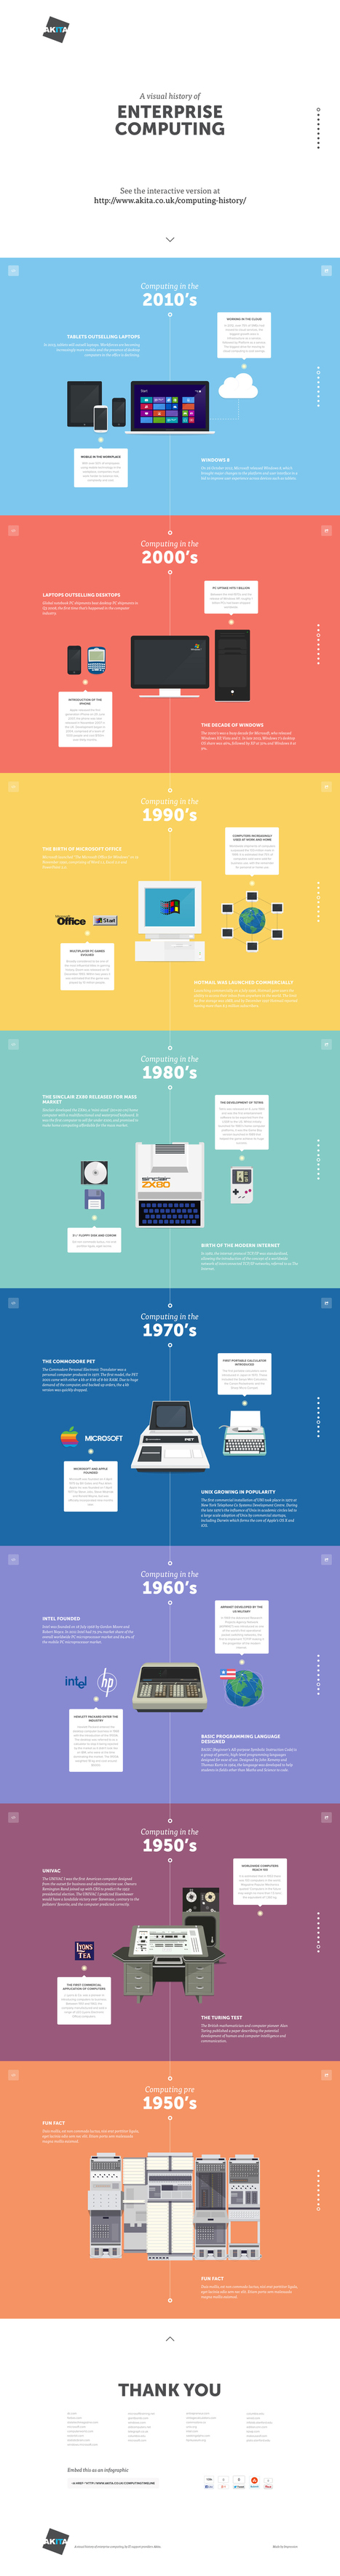 A Visual History of Computing [Infographic] | visual data | Scoop.it